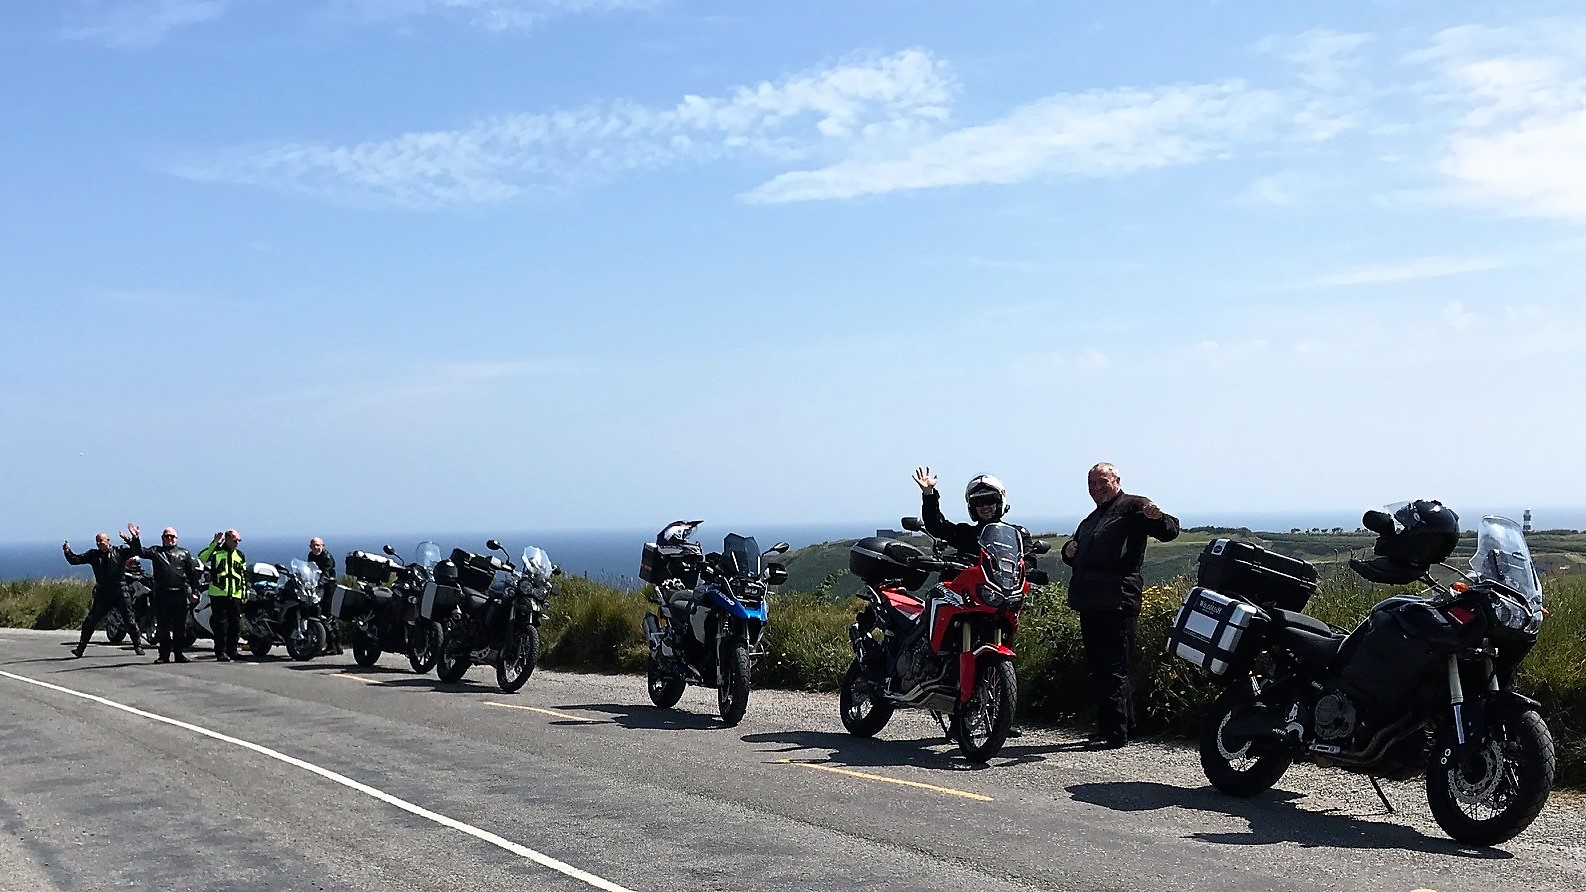 WILDIRISH Motorcycle Tours of Ireland - Old Head, Kinsale, Co. Cork